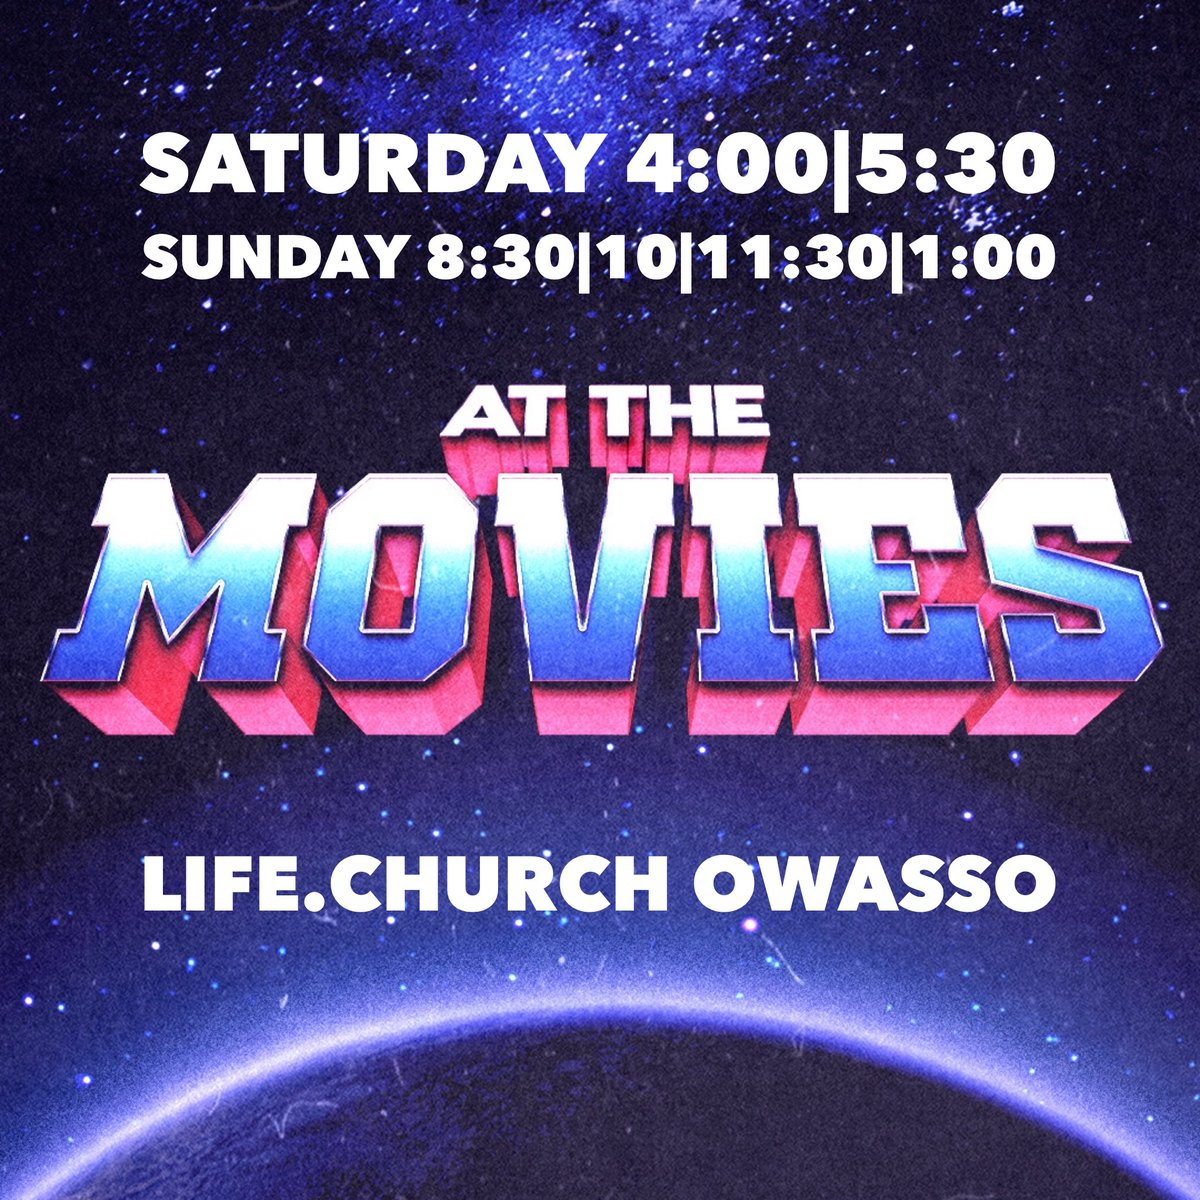 Great weekend kicks off 🏈today! @GatorsFB 🐊back in action, watching my boys play for the Owasso Rams 🐑 and then 'At the Movies' 🍿week 3 @lifechurchOWS 🔥🔥🔥 #weekendvibes #soexcited https://t.co/z39TDykt1Q